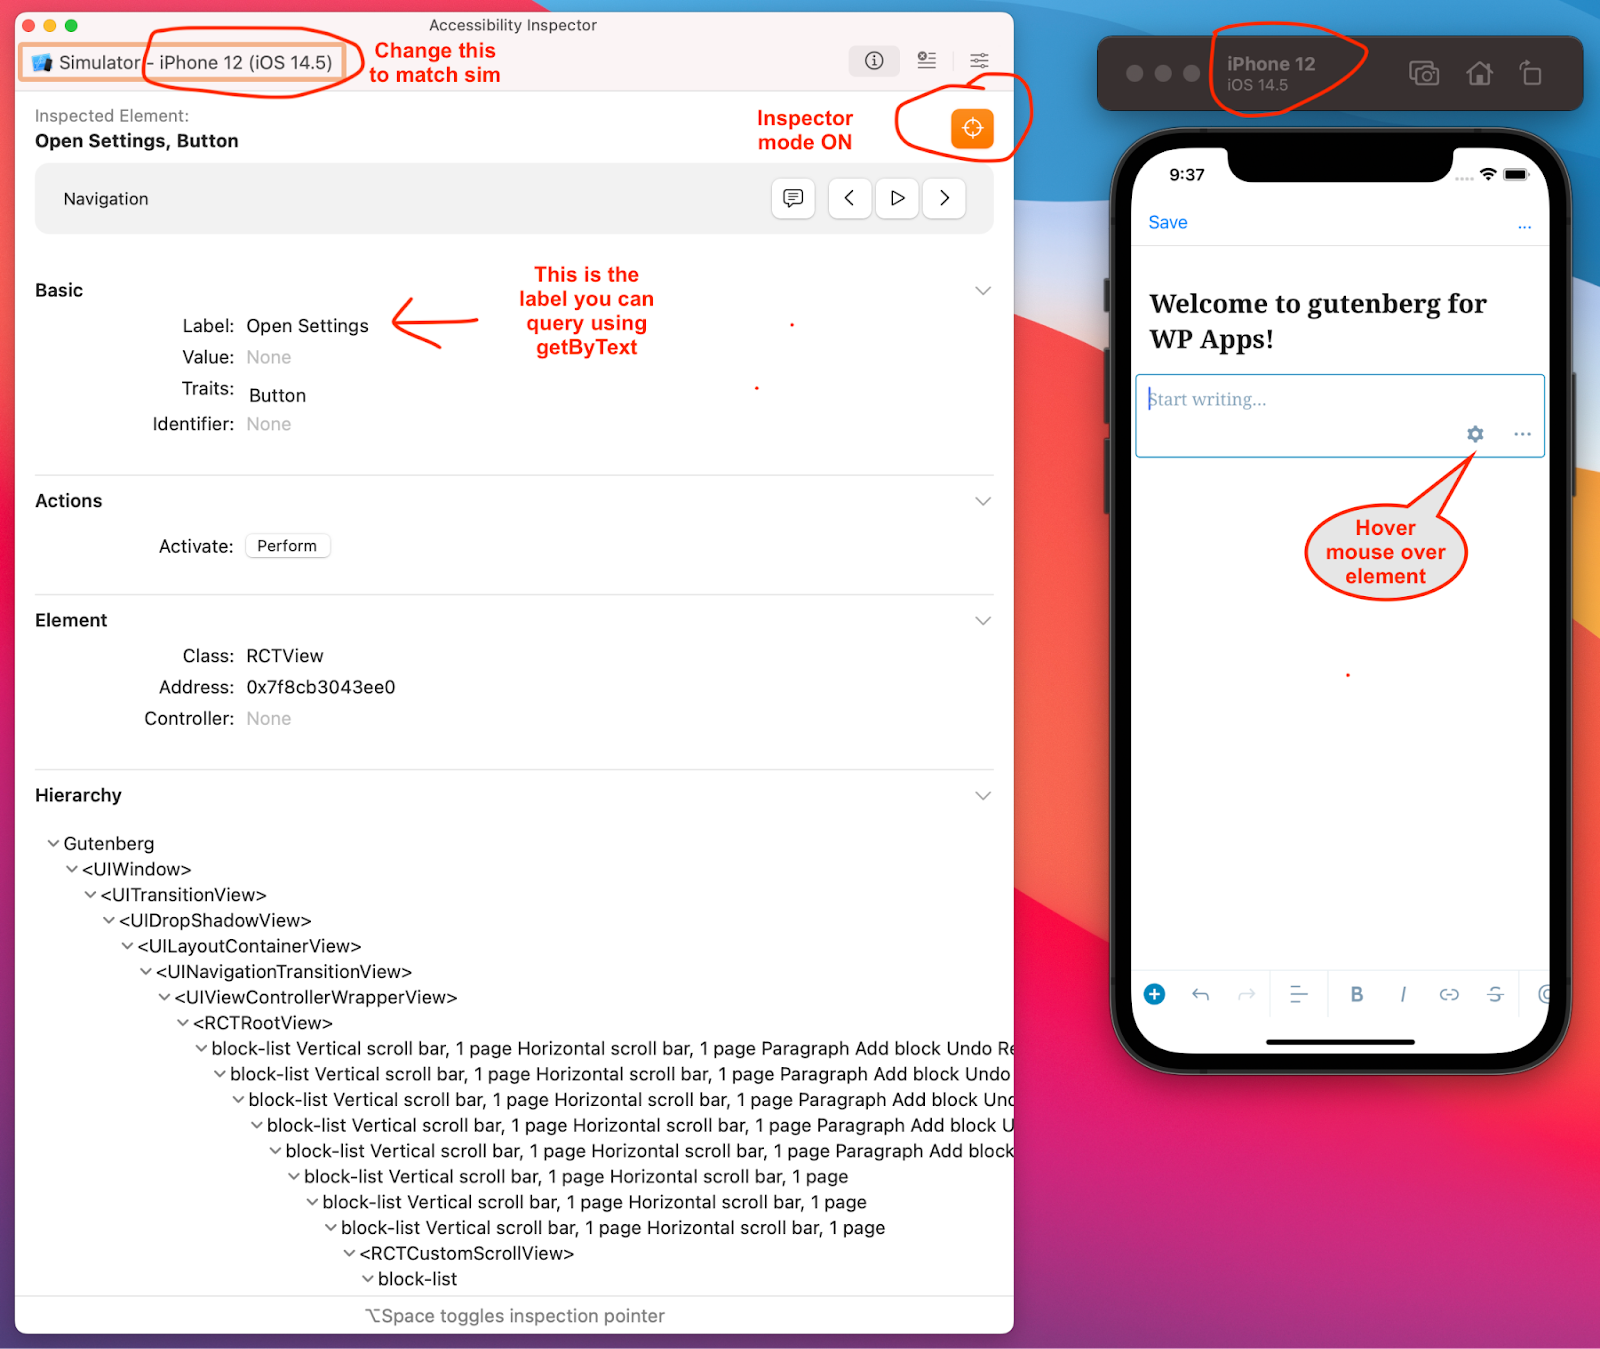 Screenshot of the Xcode Accessibility Inspector app. The screenshot shows how to choose the correct target in the device dropdown, enable target mode, and locate accessibility labels after tapping on screen elements